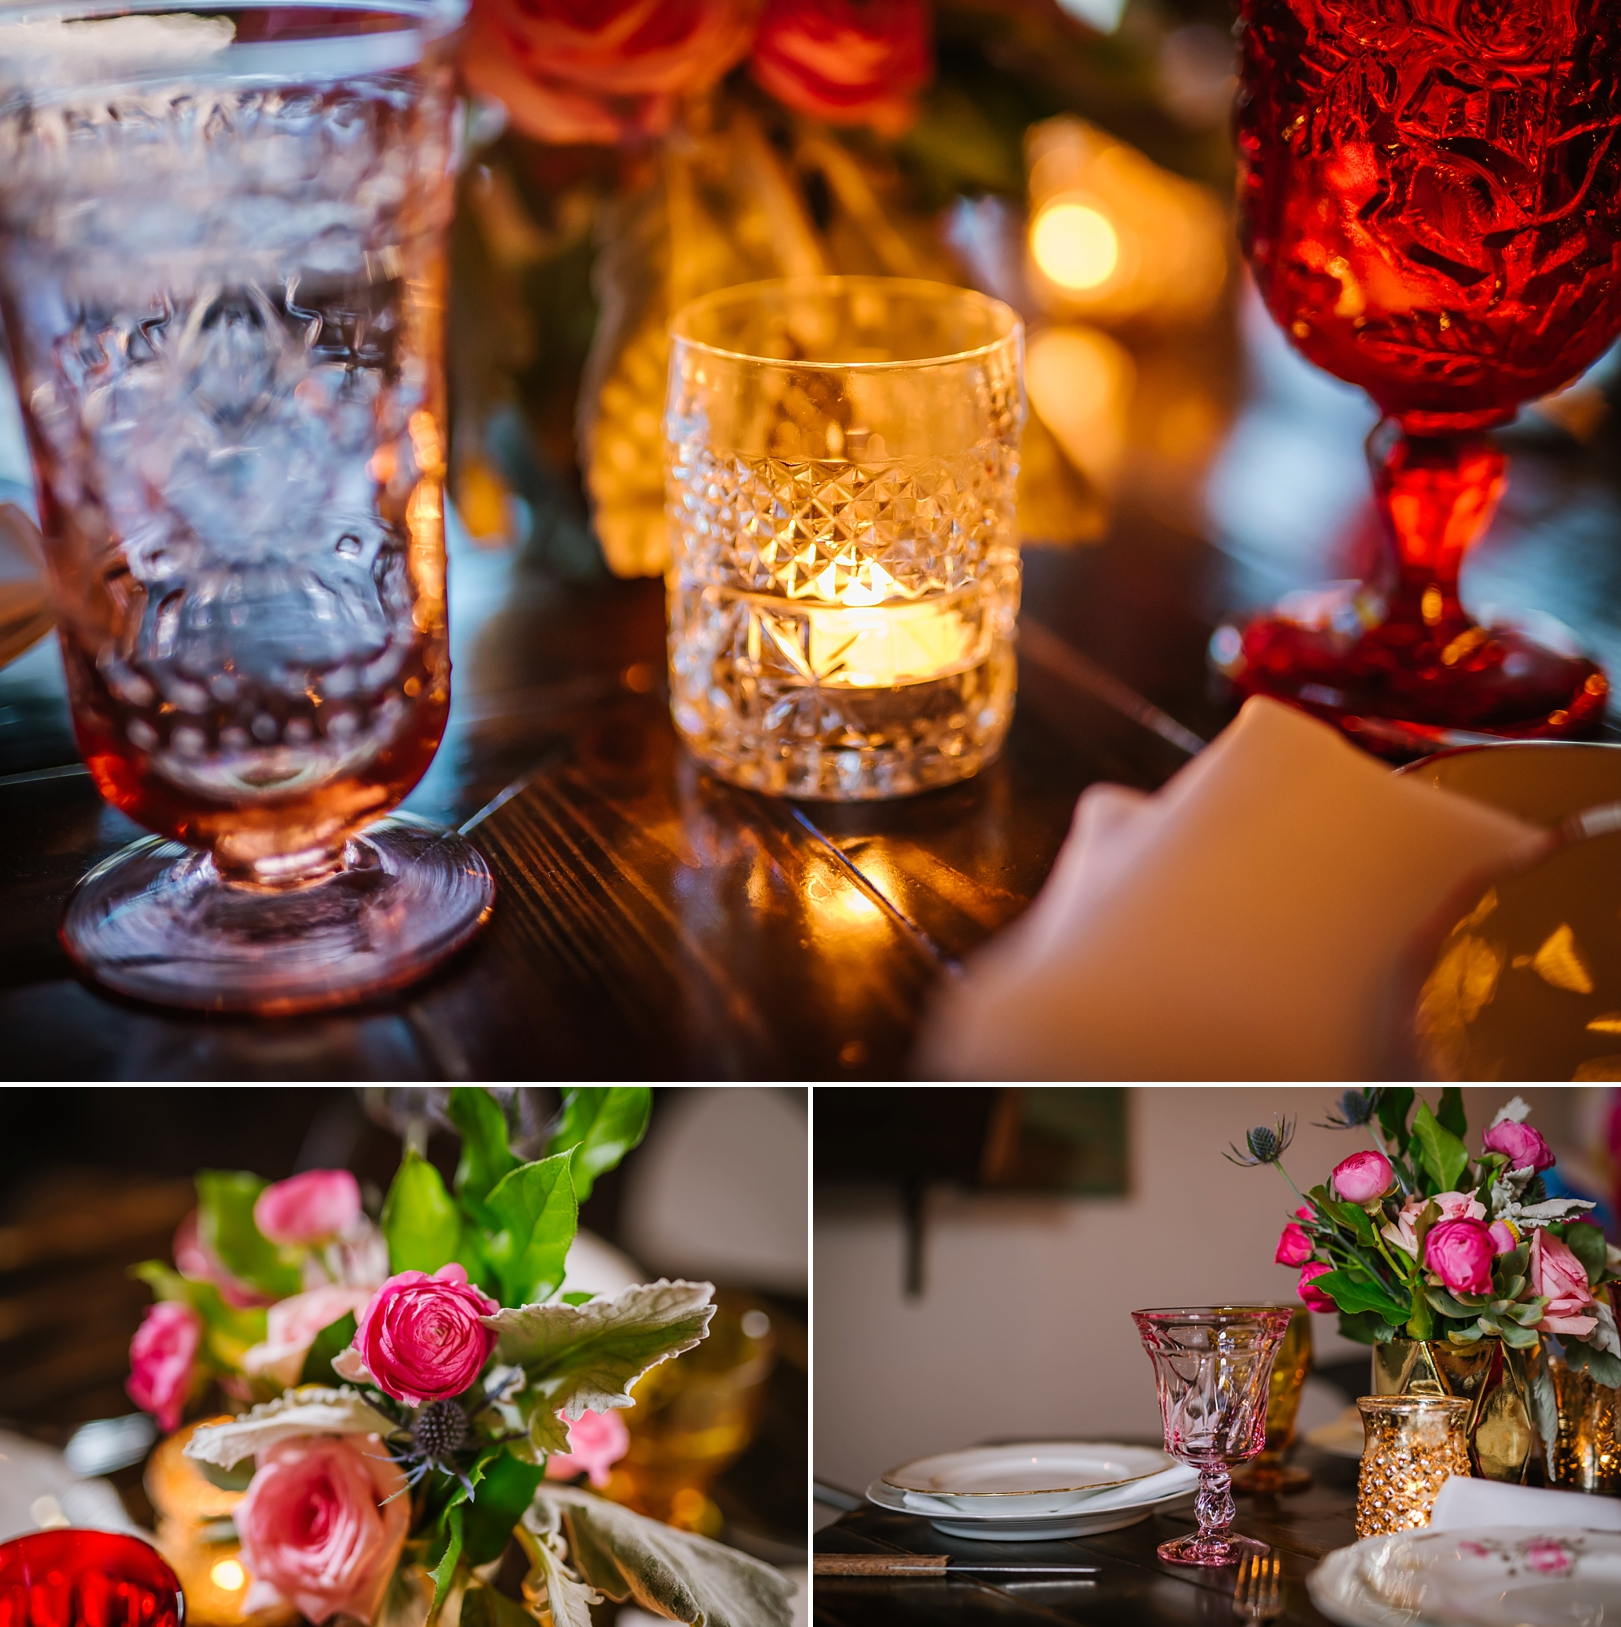 tampa-event-photographer-styled-party-ideas-oh-hello_0002.jpg